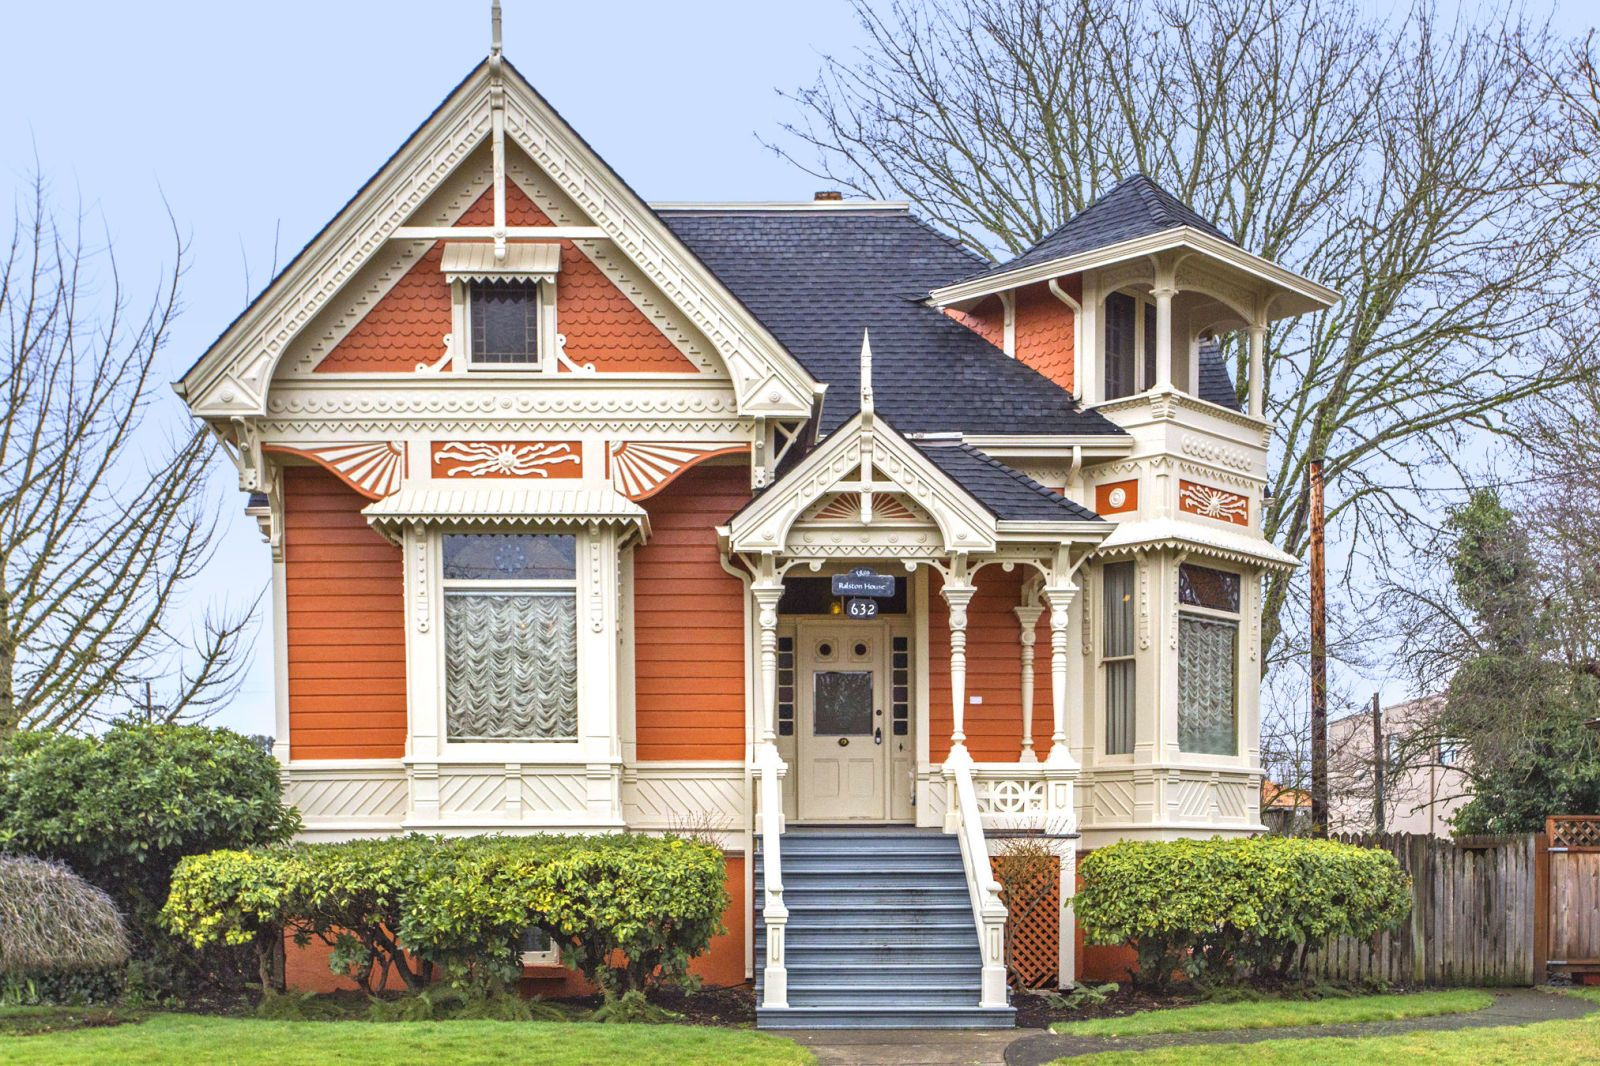 50 Historic Homes for Sale In Every State Across America